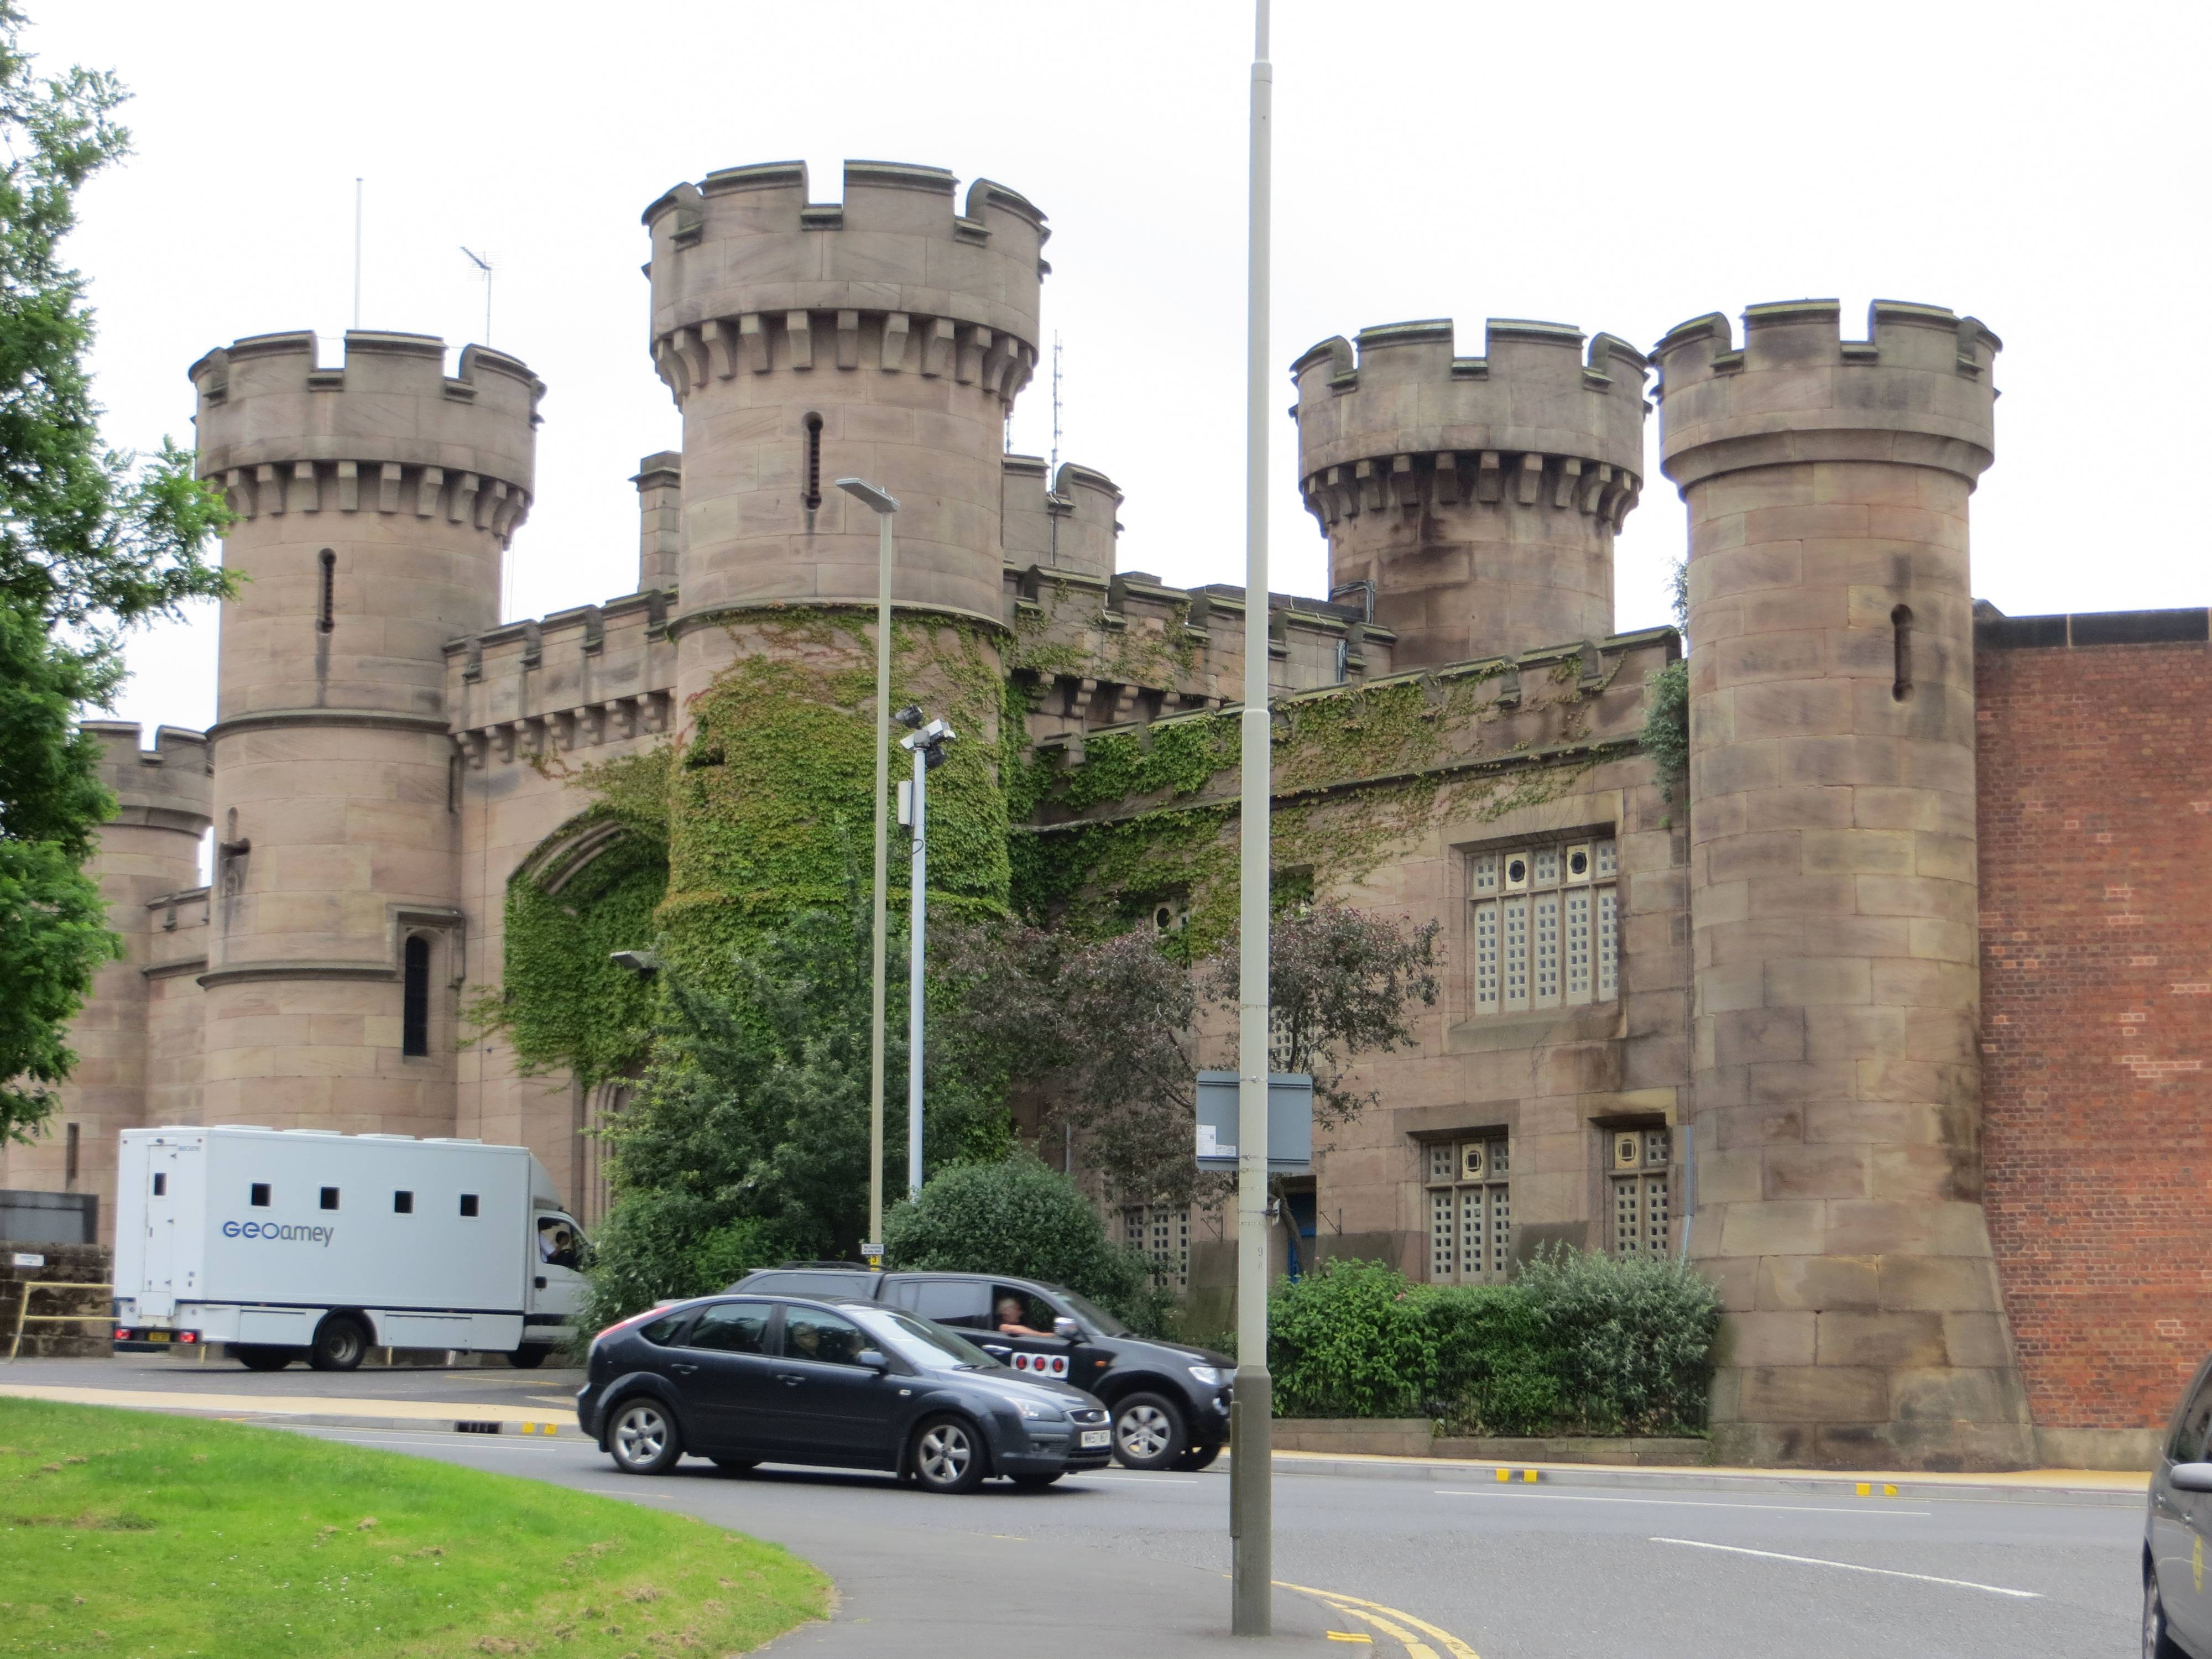 leicester-the-prison